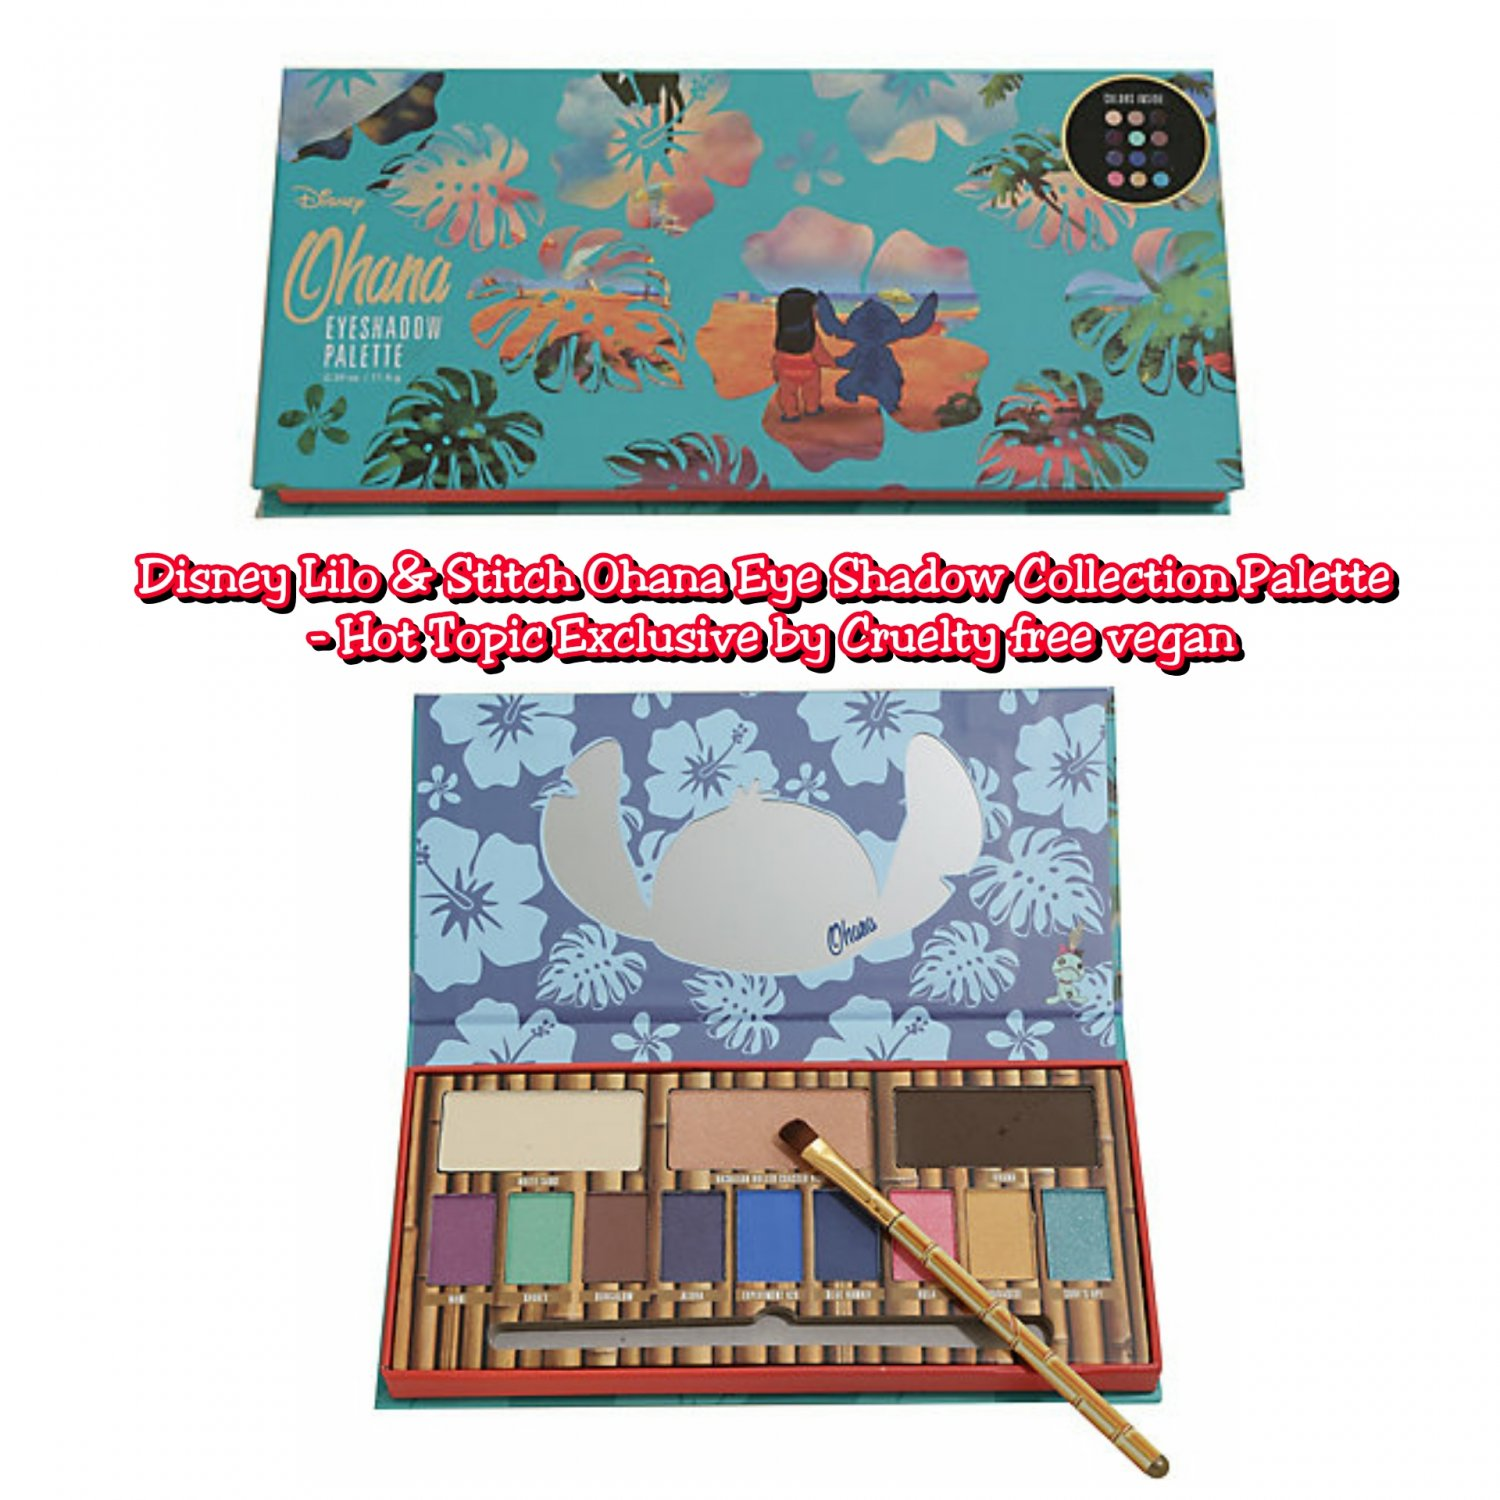 Disney Lilo & Stitch Ohana Eye Shadow Collection Palette (12 Shades) Hot Topic Exclusive